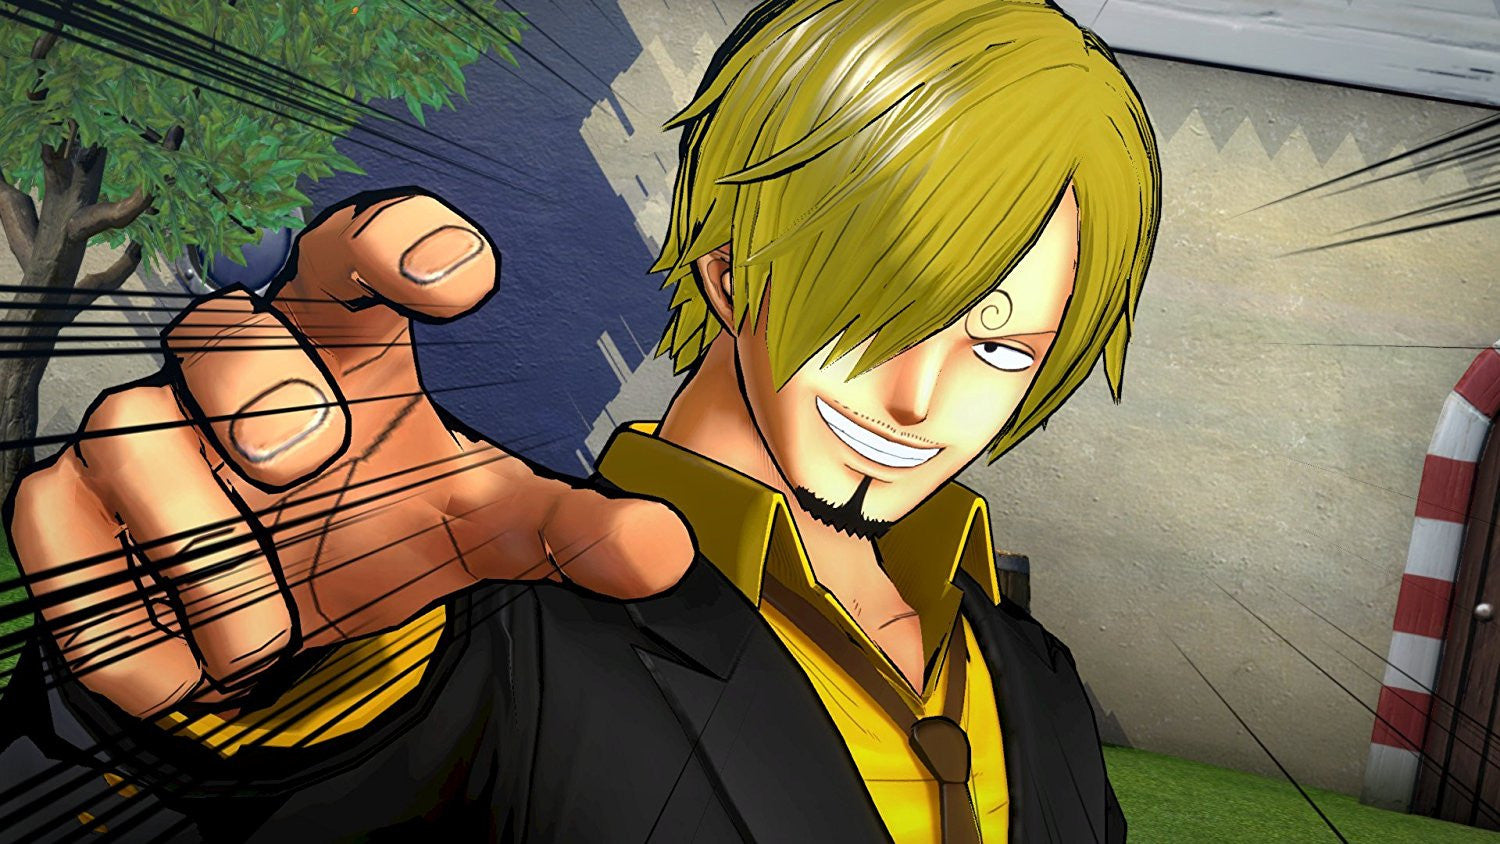 One Piece: Burning Blood - PS4 - Video Games by Bandai Namco Entertainment The Chelsea Gamer